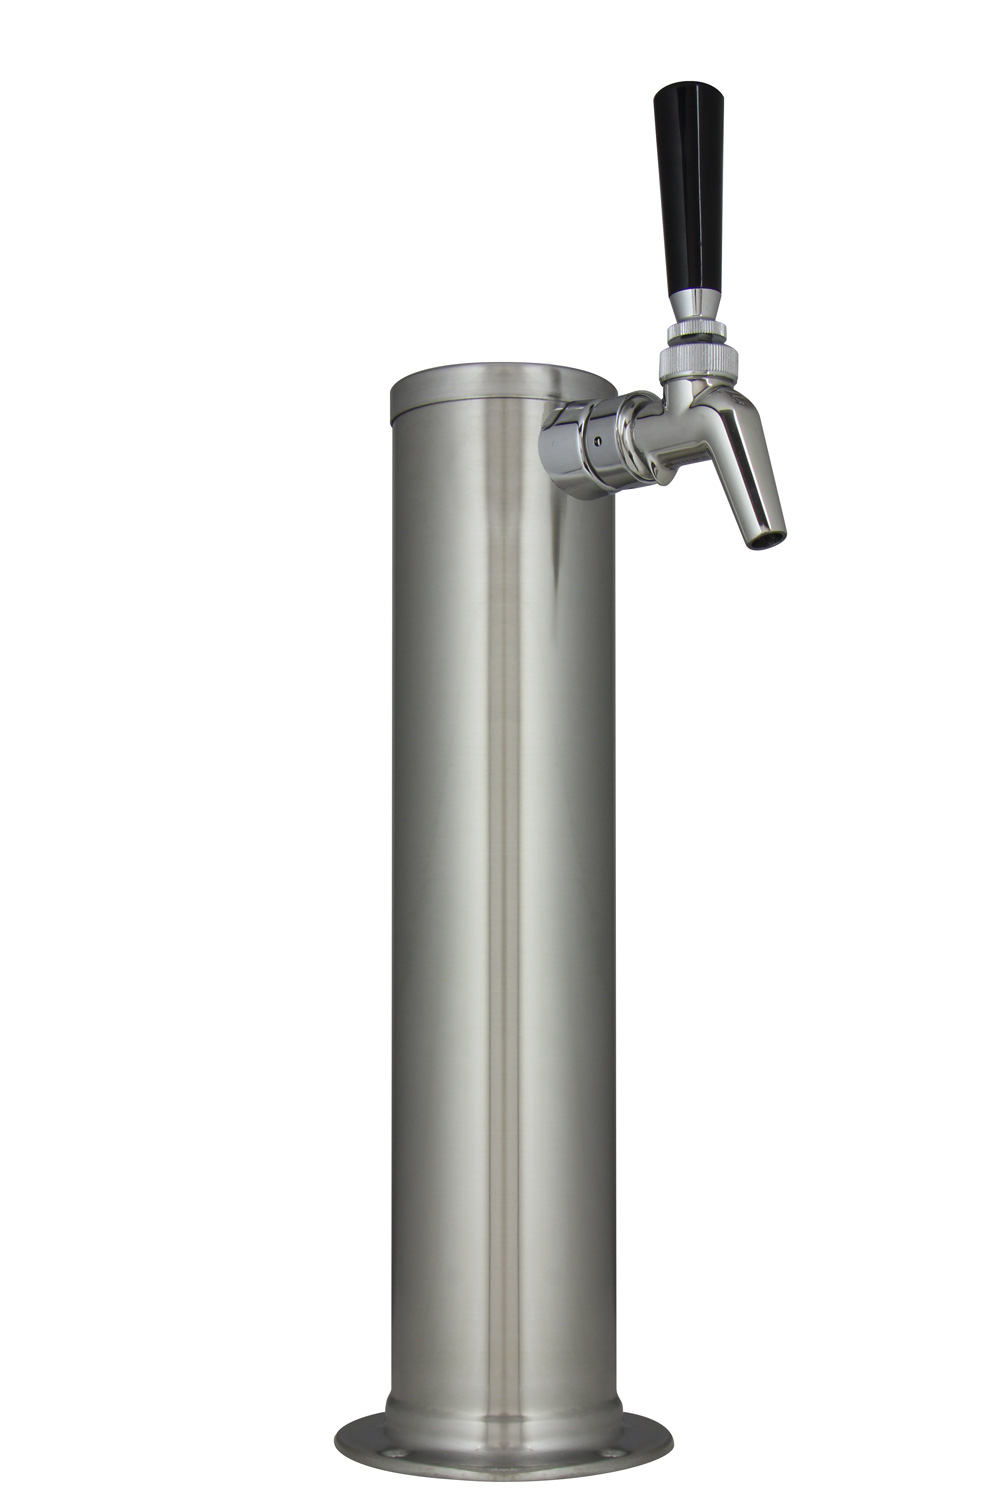 home modern your faucets single dispenser stainless bathroom faucet for sale handle steel best depot with decor design and fabulous kitchen soap